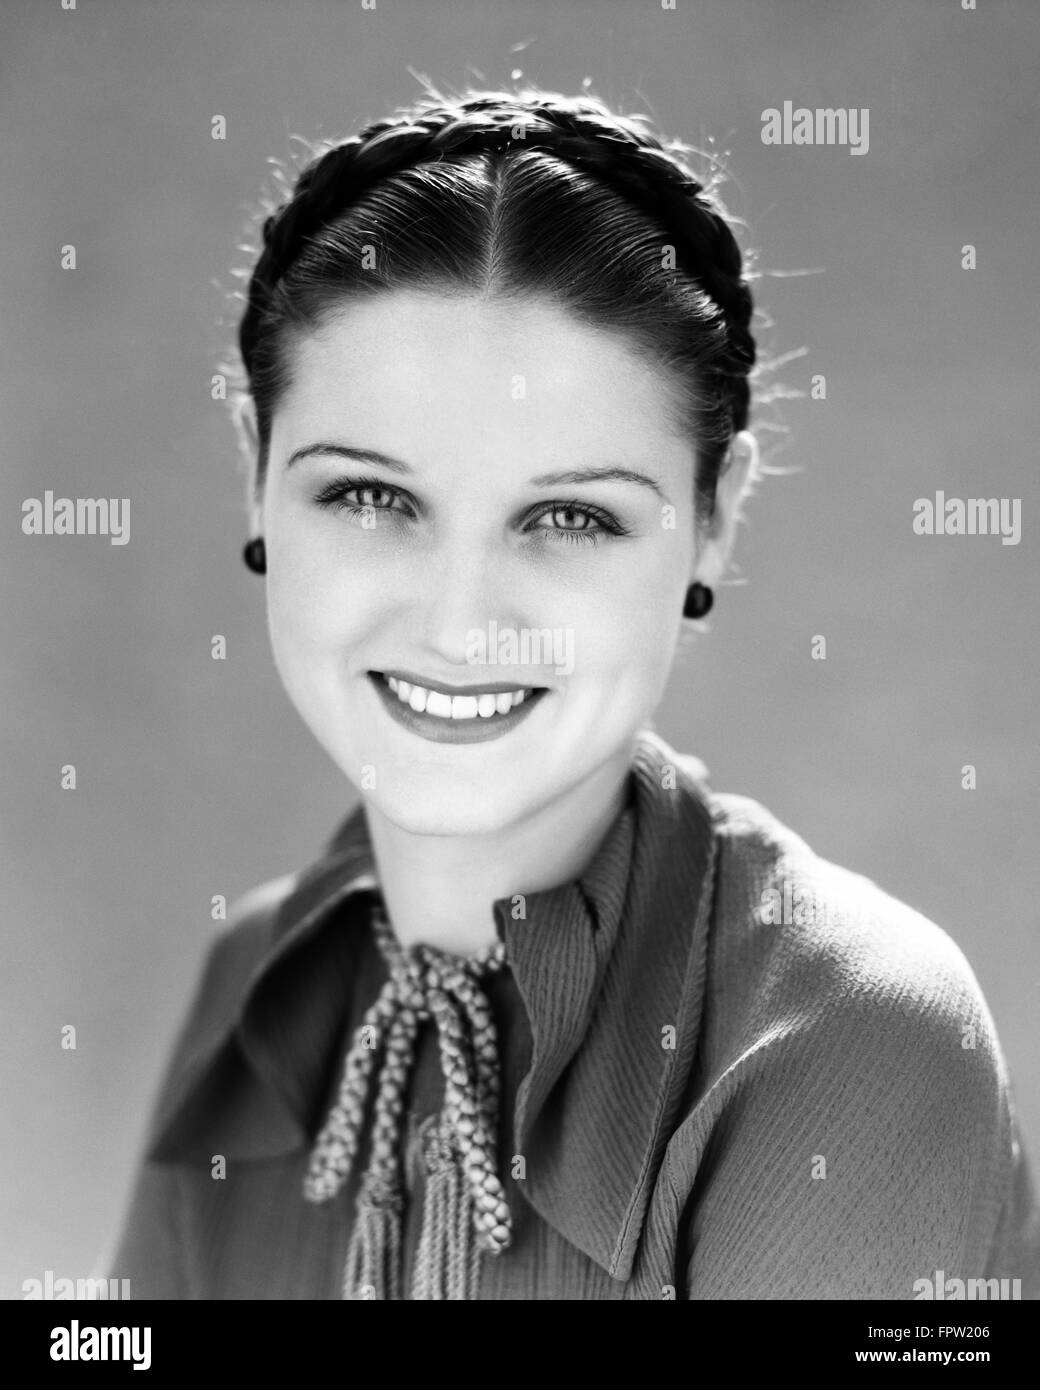 1930s SMILING PRETTY BRUNETTE WOMAN PORTRAIT HAIR BRAIDED LOOKING AT CAMERA - Stock Image